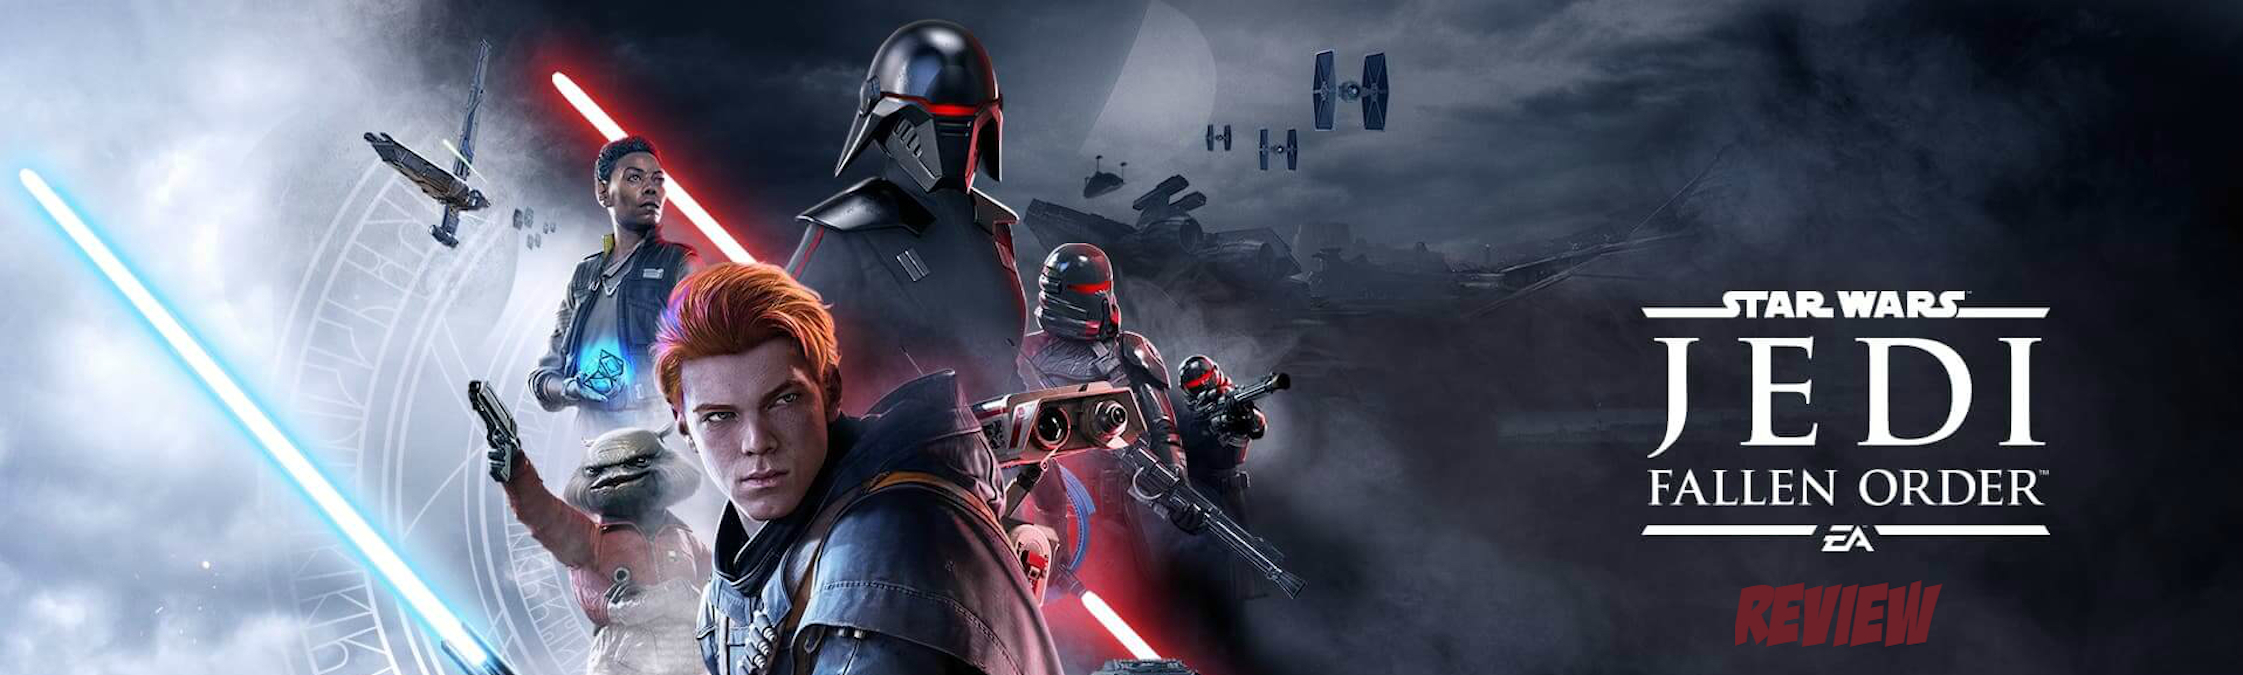 star wars jedi fallen order review